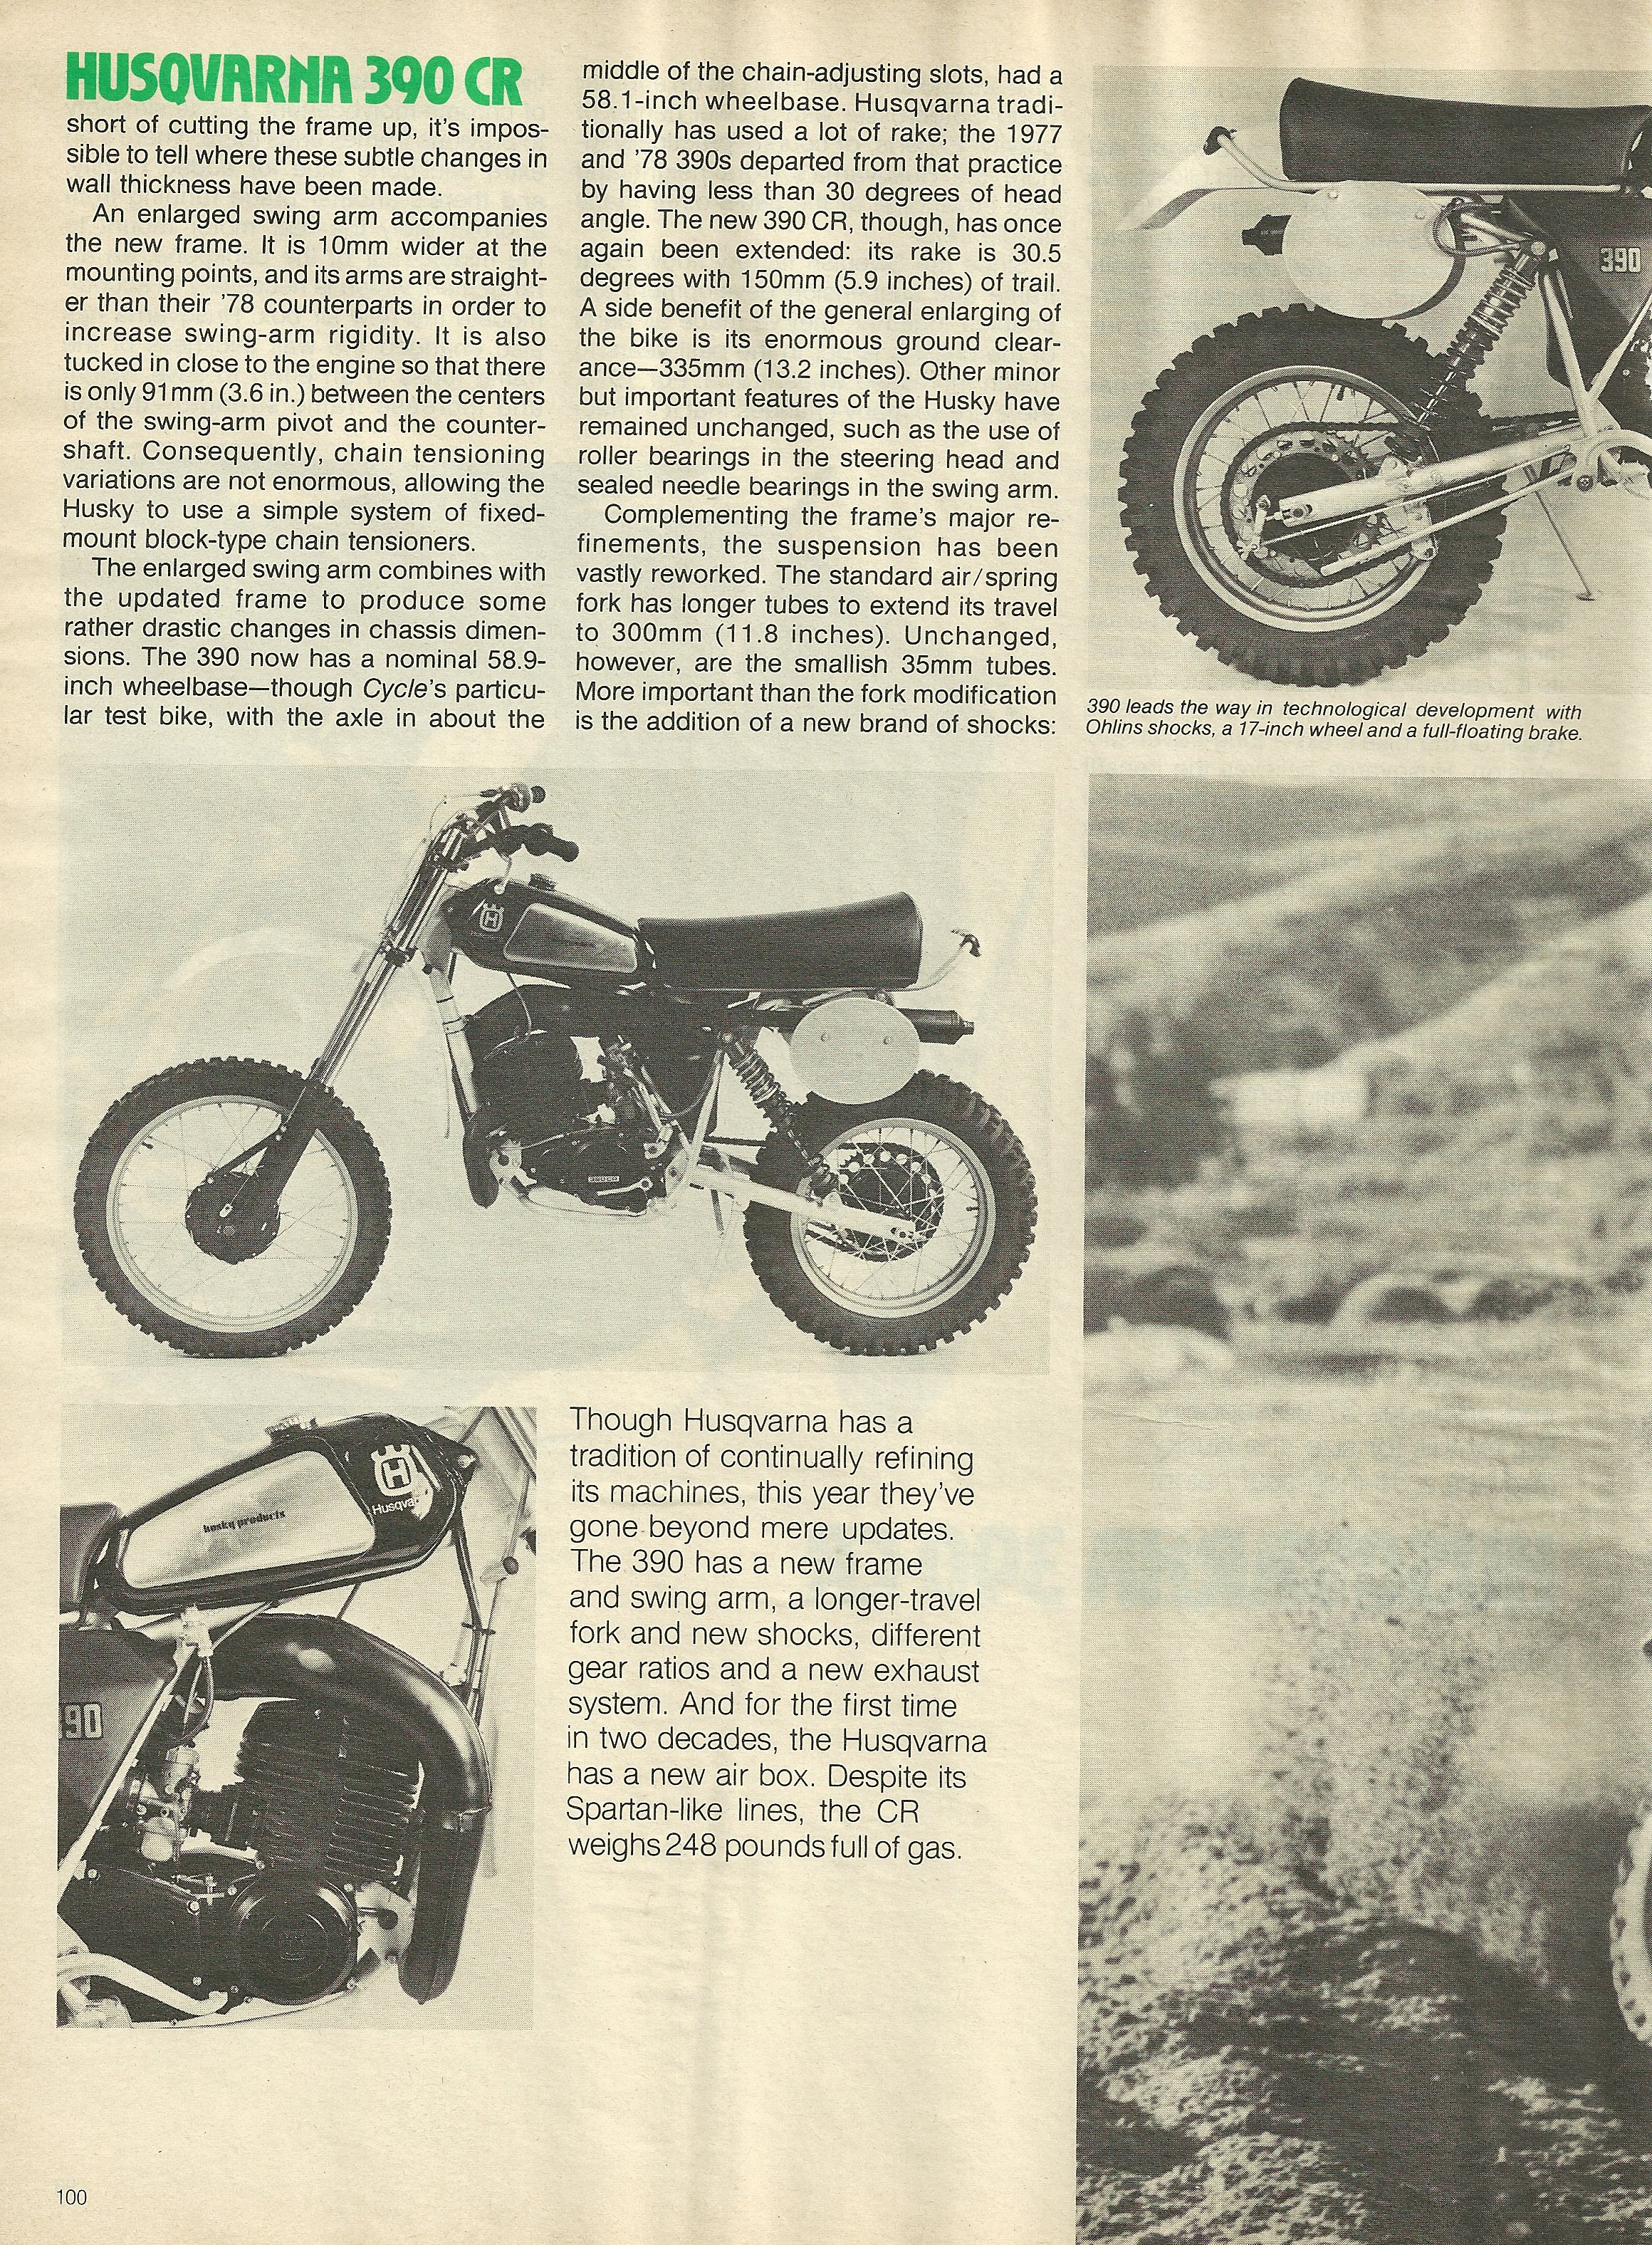 1979 Husqvarna 390 CR off road test 3.JPG